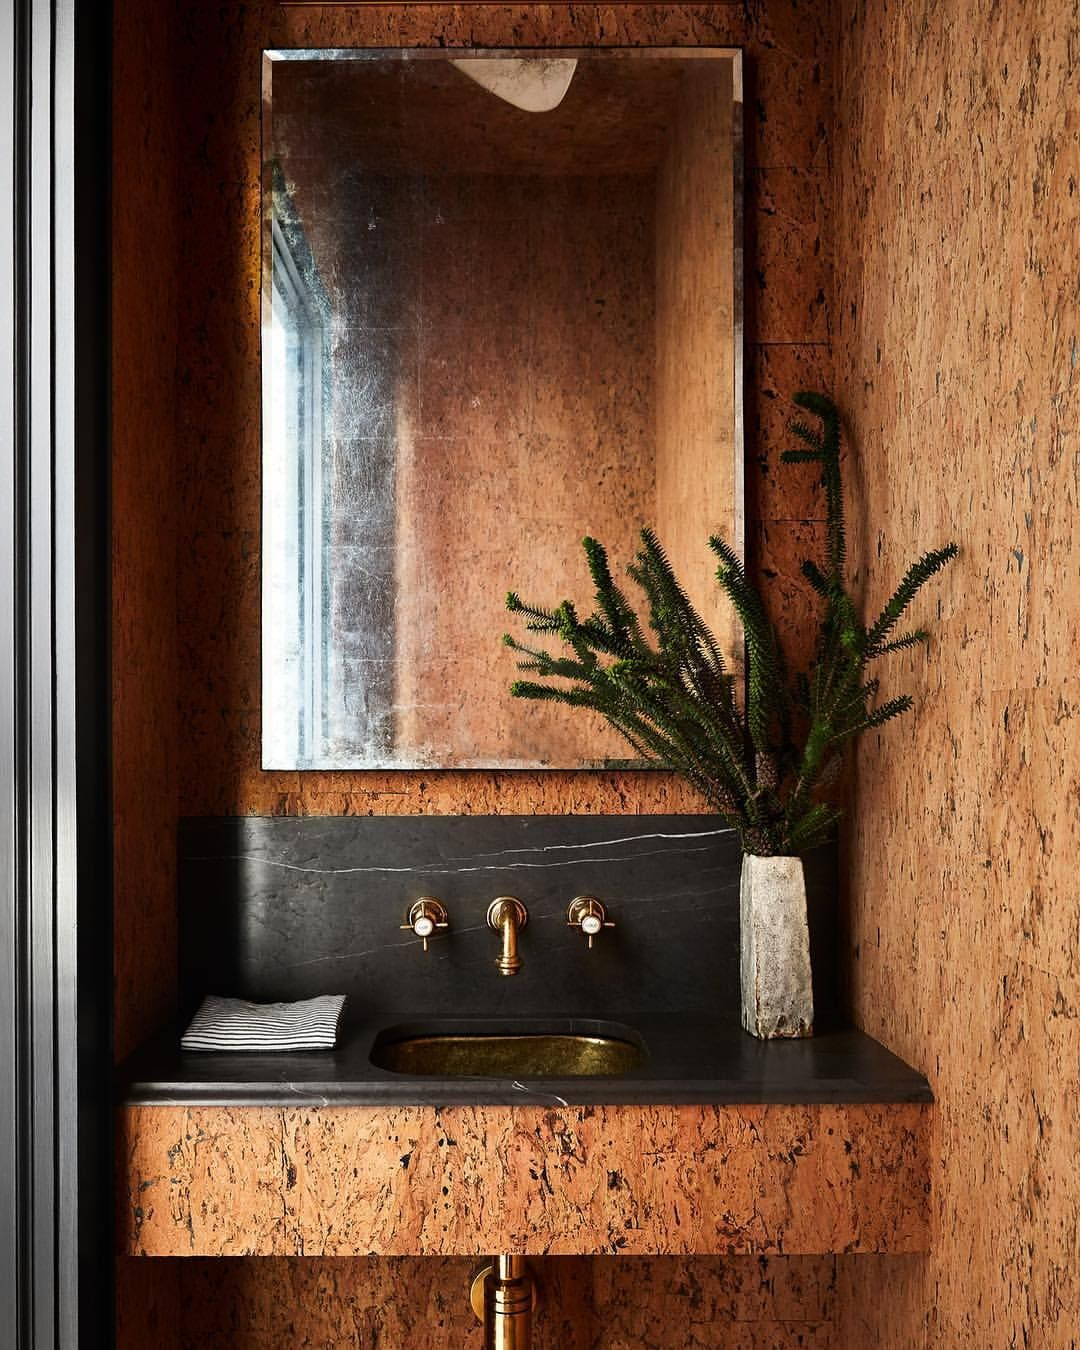 Shawn henderson on instagram modern vintage our cork texture inspired westvillage powder room opens up an inspiring scene in an unexpected space